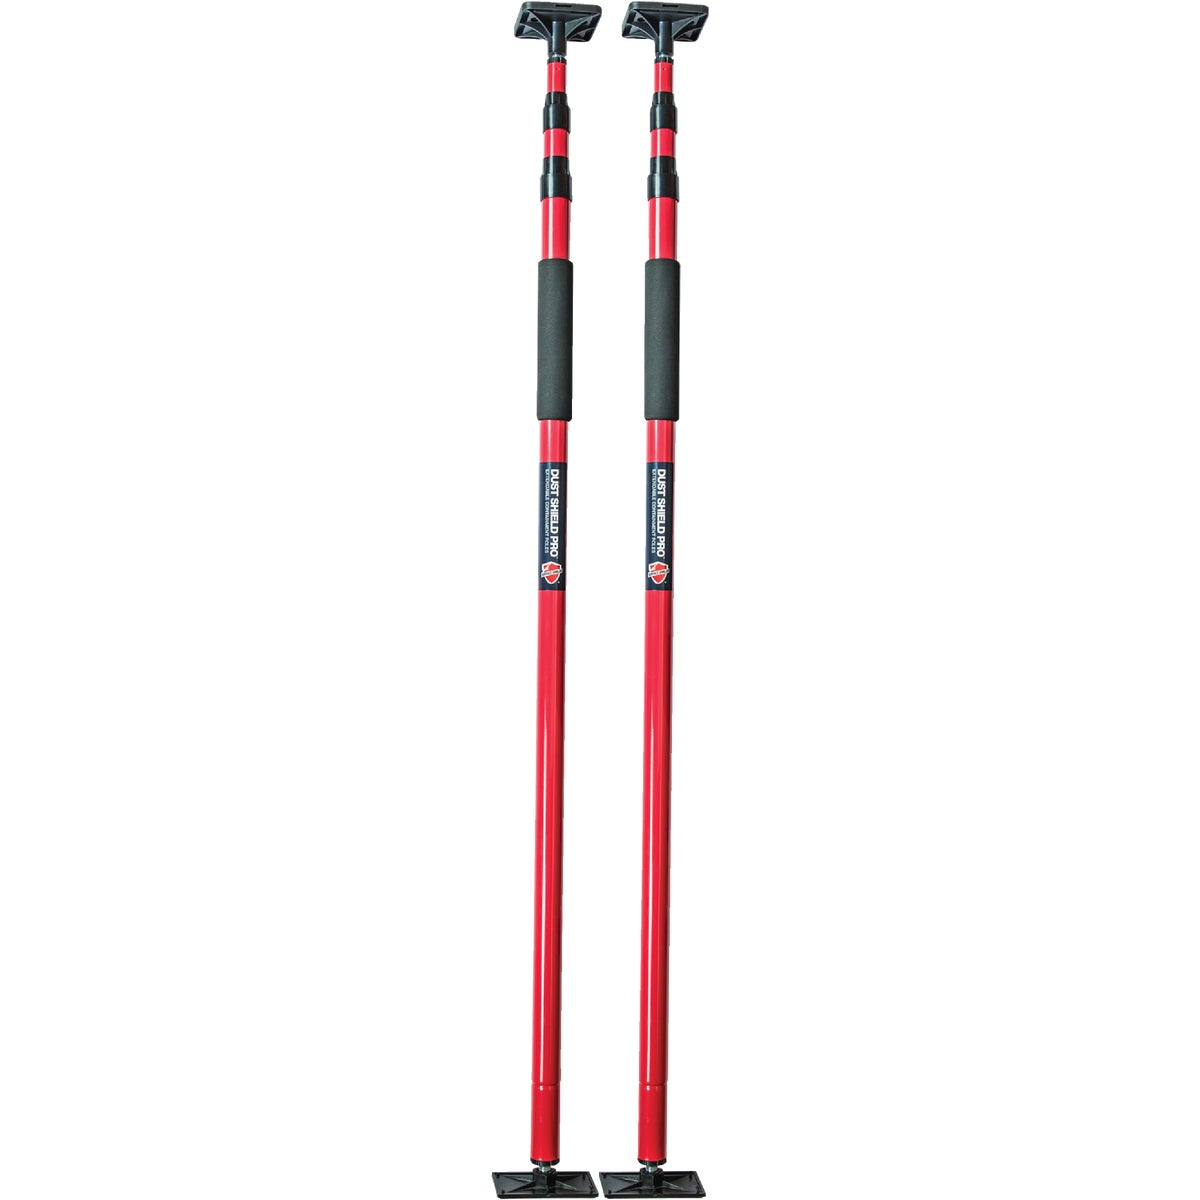 2PK ADJUSTABLE PRO POLES - DSPRO2 by Surface Shields Inc